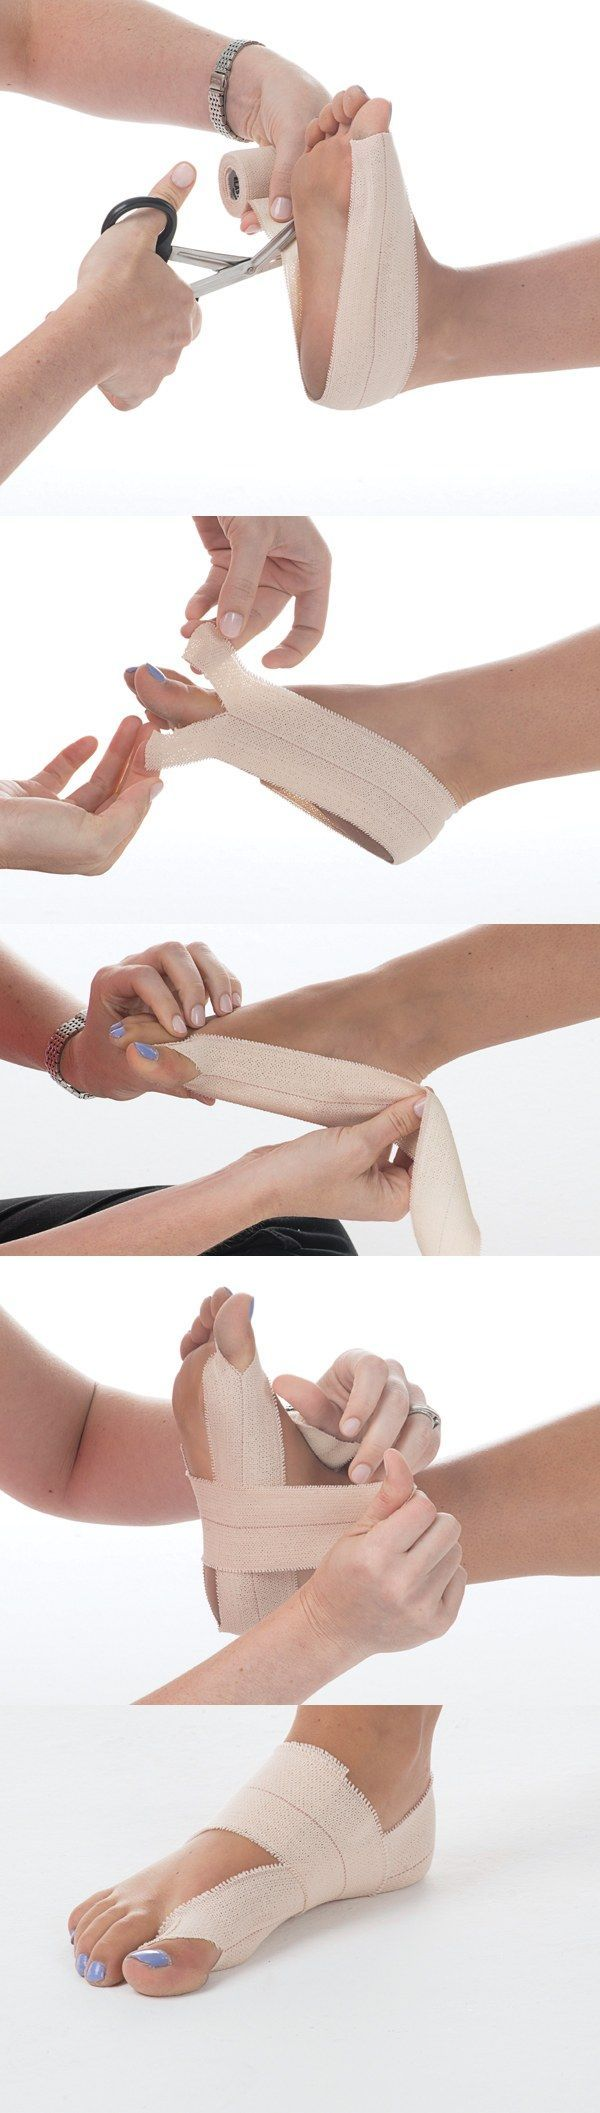 """Tape can be your friend when it comes to pain management—from chronic injuries, like plantar fasciitis and Achilles tendonitis, to acute injuries, like ankle sprains. """"When applied correctly, tape can help a dancer support and protect an overworked muscle, tendon or ligament by limiting its movement..."""